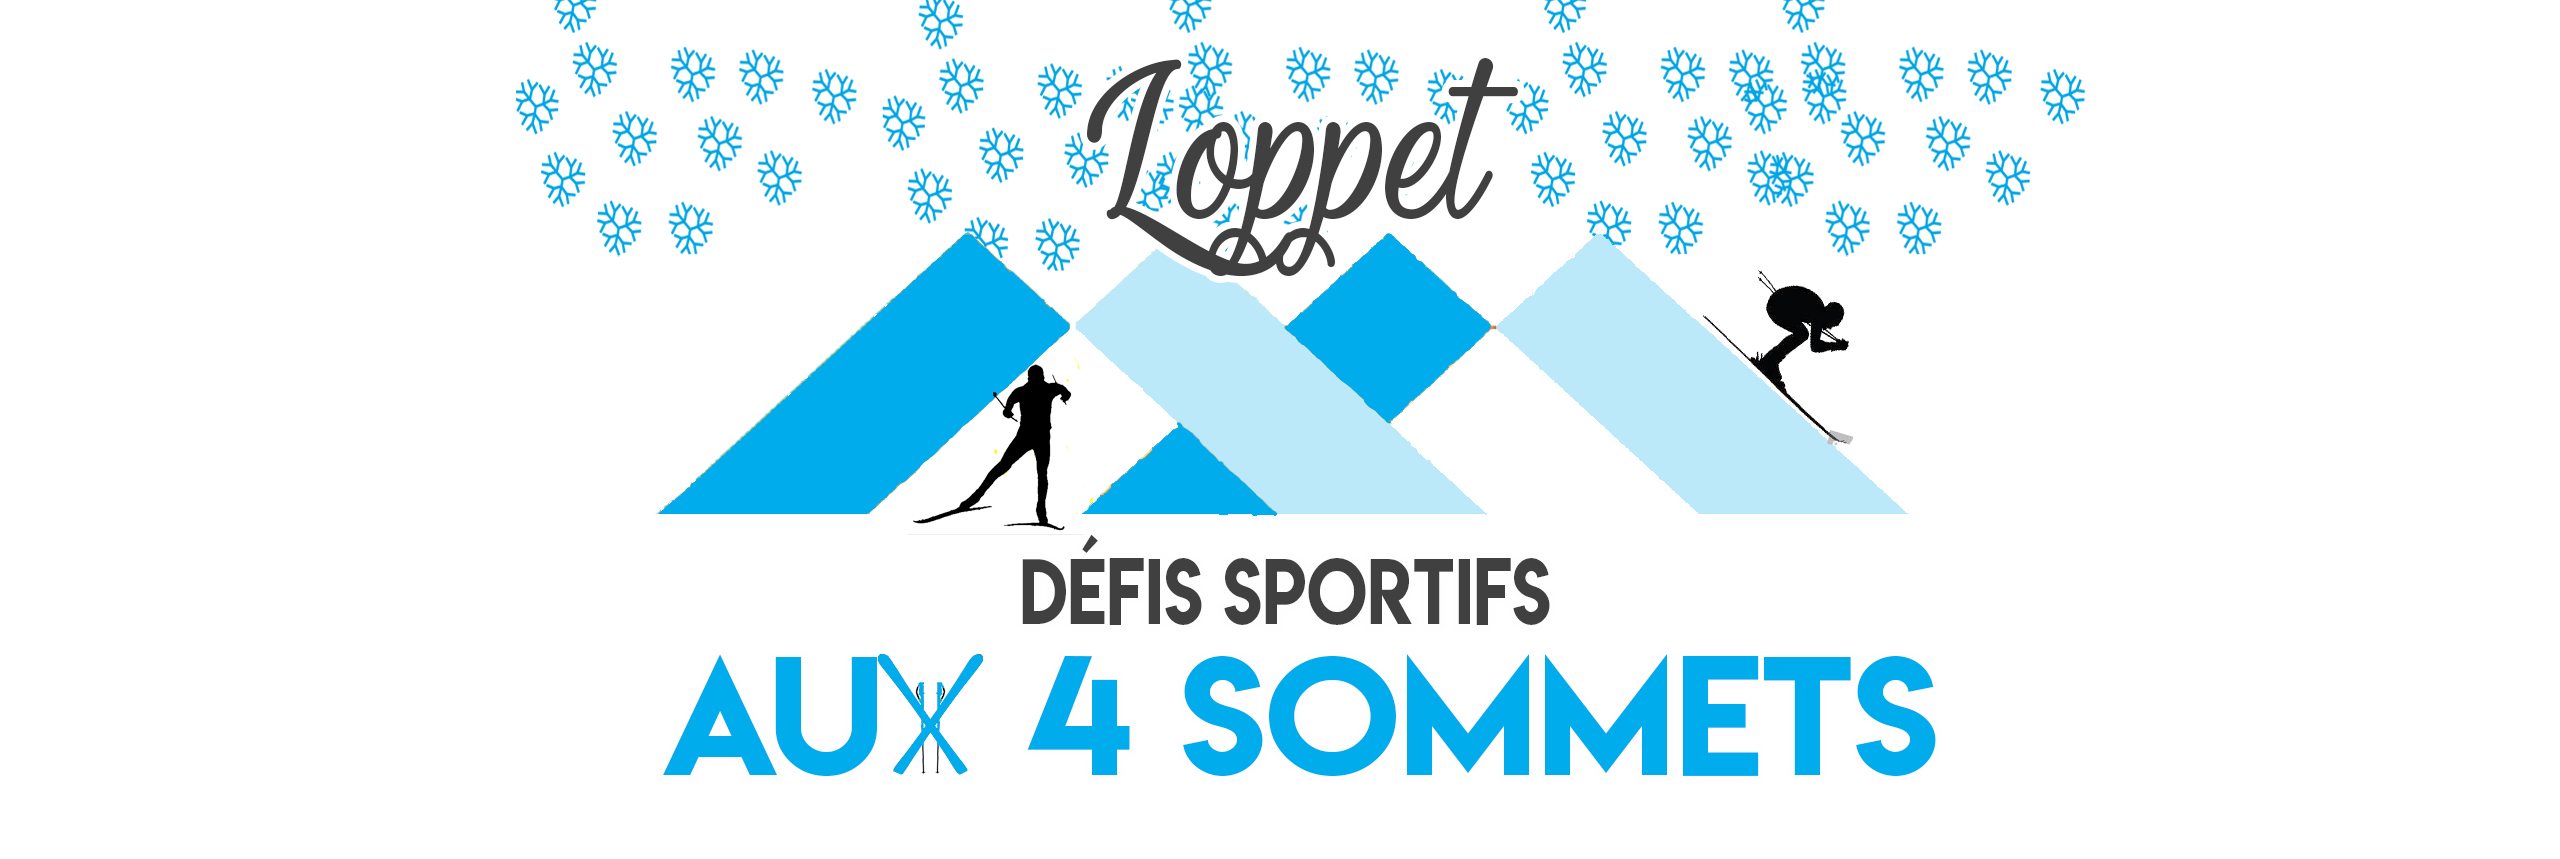 http://www.aux4sommets.com/wp-content/uploads/2014/05/logo-upload-fini.png